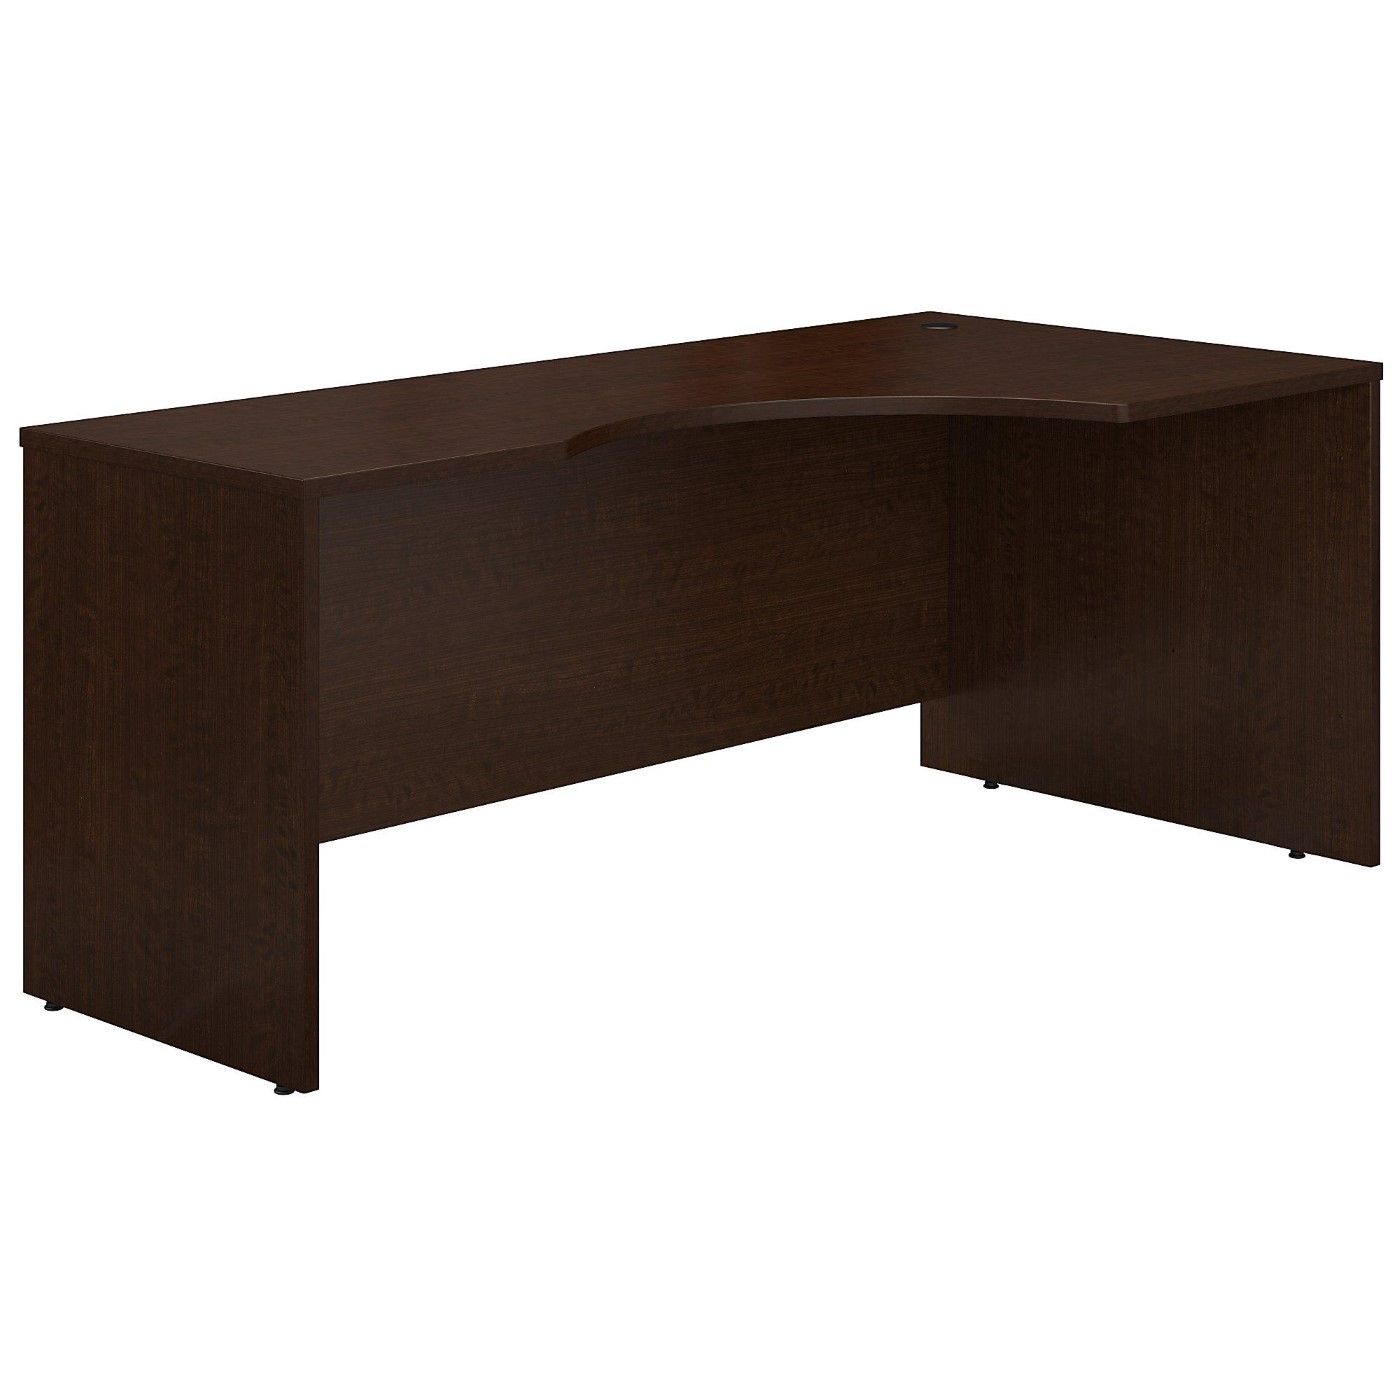 BUSH BUSINESS FURNITURE SERIES C 72W LEFT HANDED CORNER DESK. FREE SHIPPING</font></b></font>&#x1F384<font color=red><b>ERGONOMICHOME HOLIDAY SALE - ENDS DEC. 17, 2019</b></font>&#x1F384